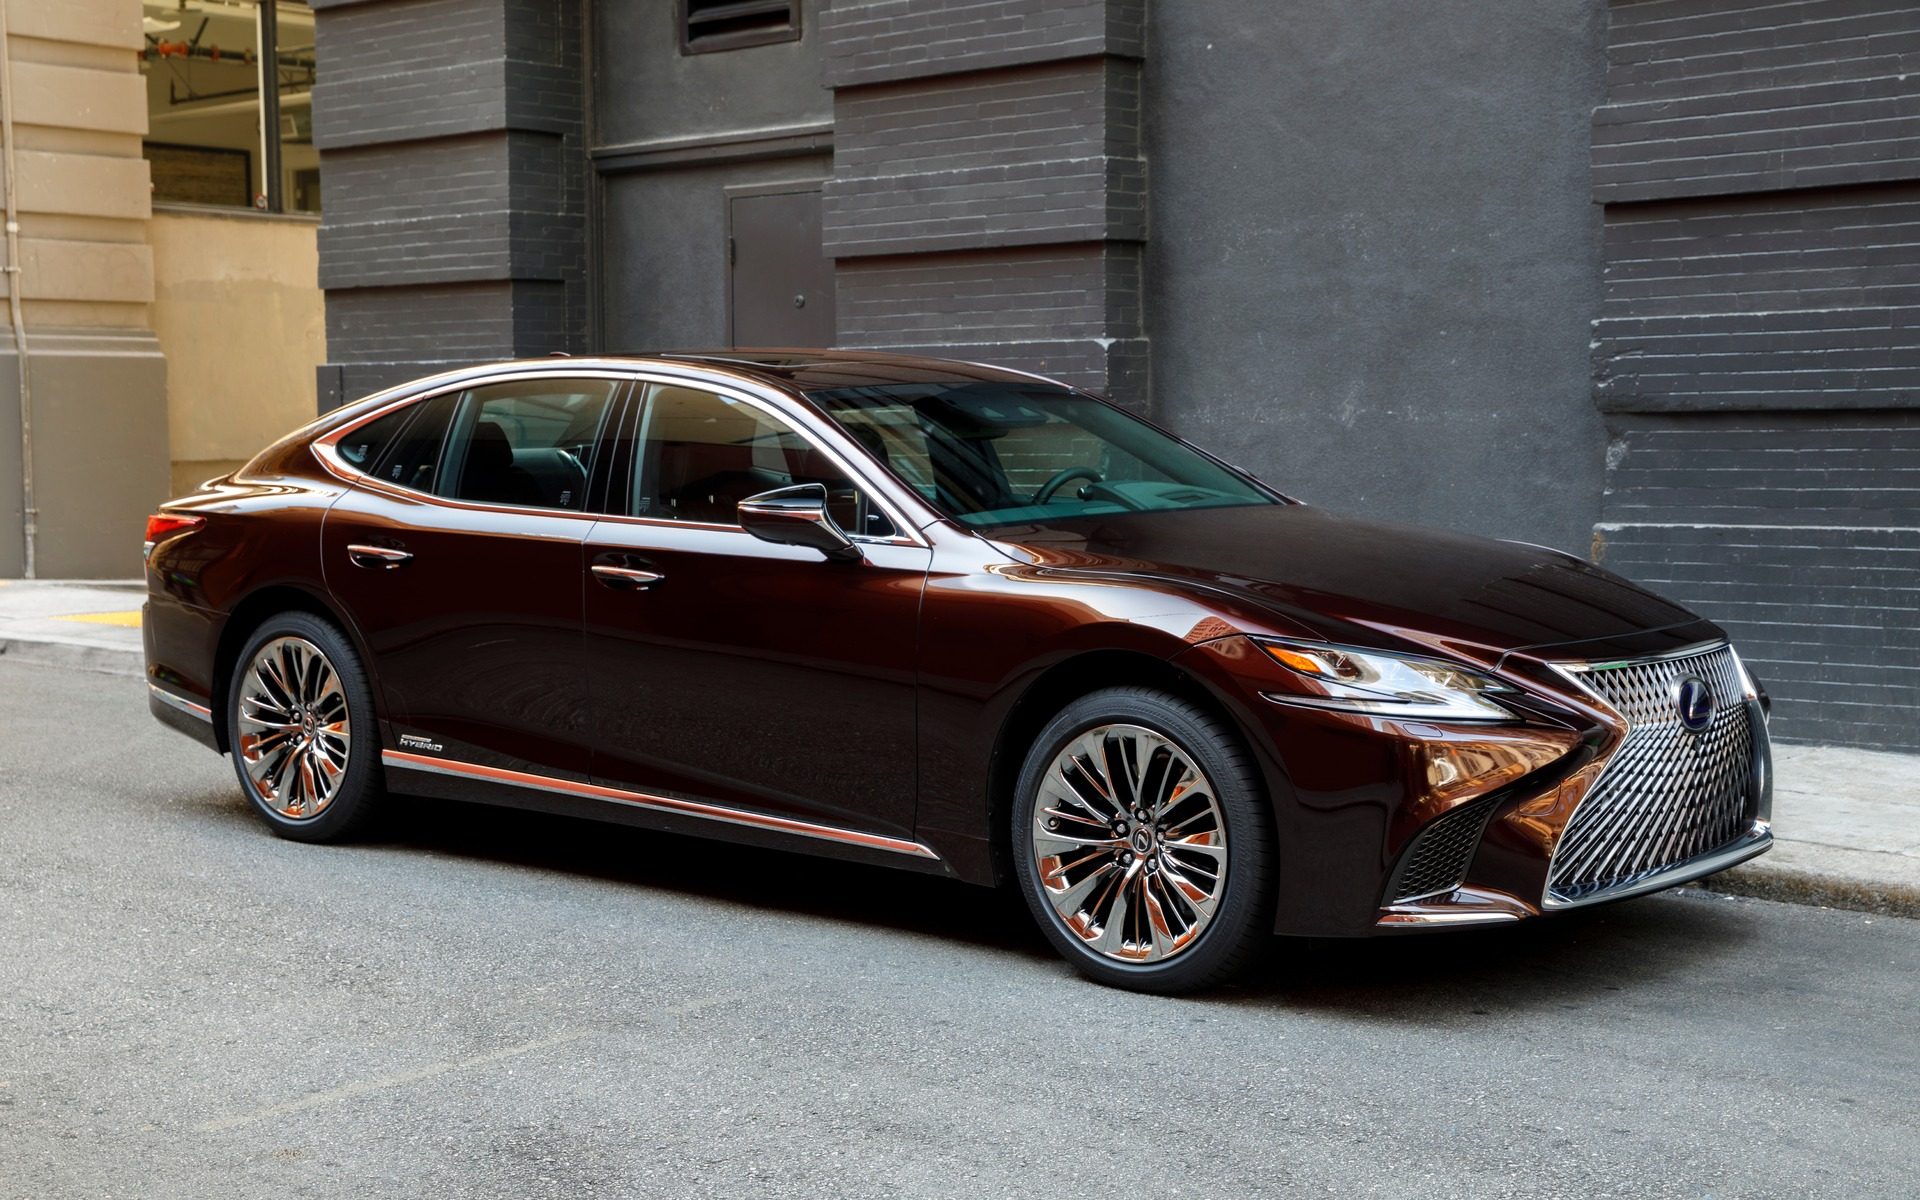 2018 lexus ls 500h and ls 500 f sport: more is less - the car guide